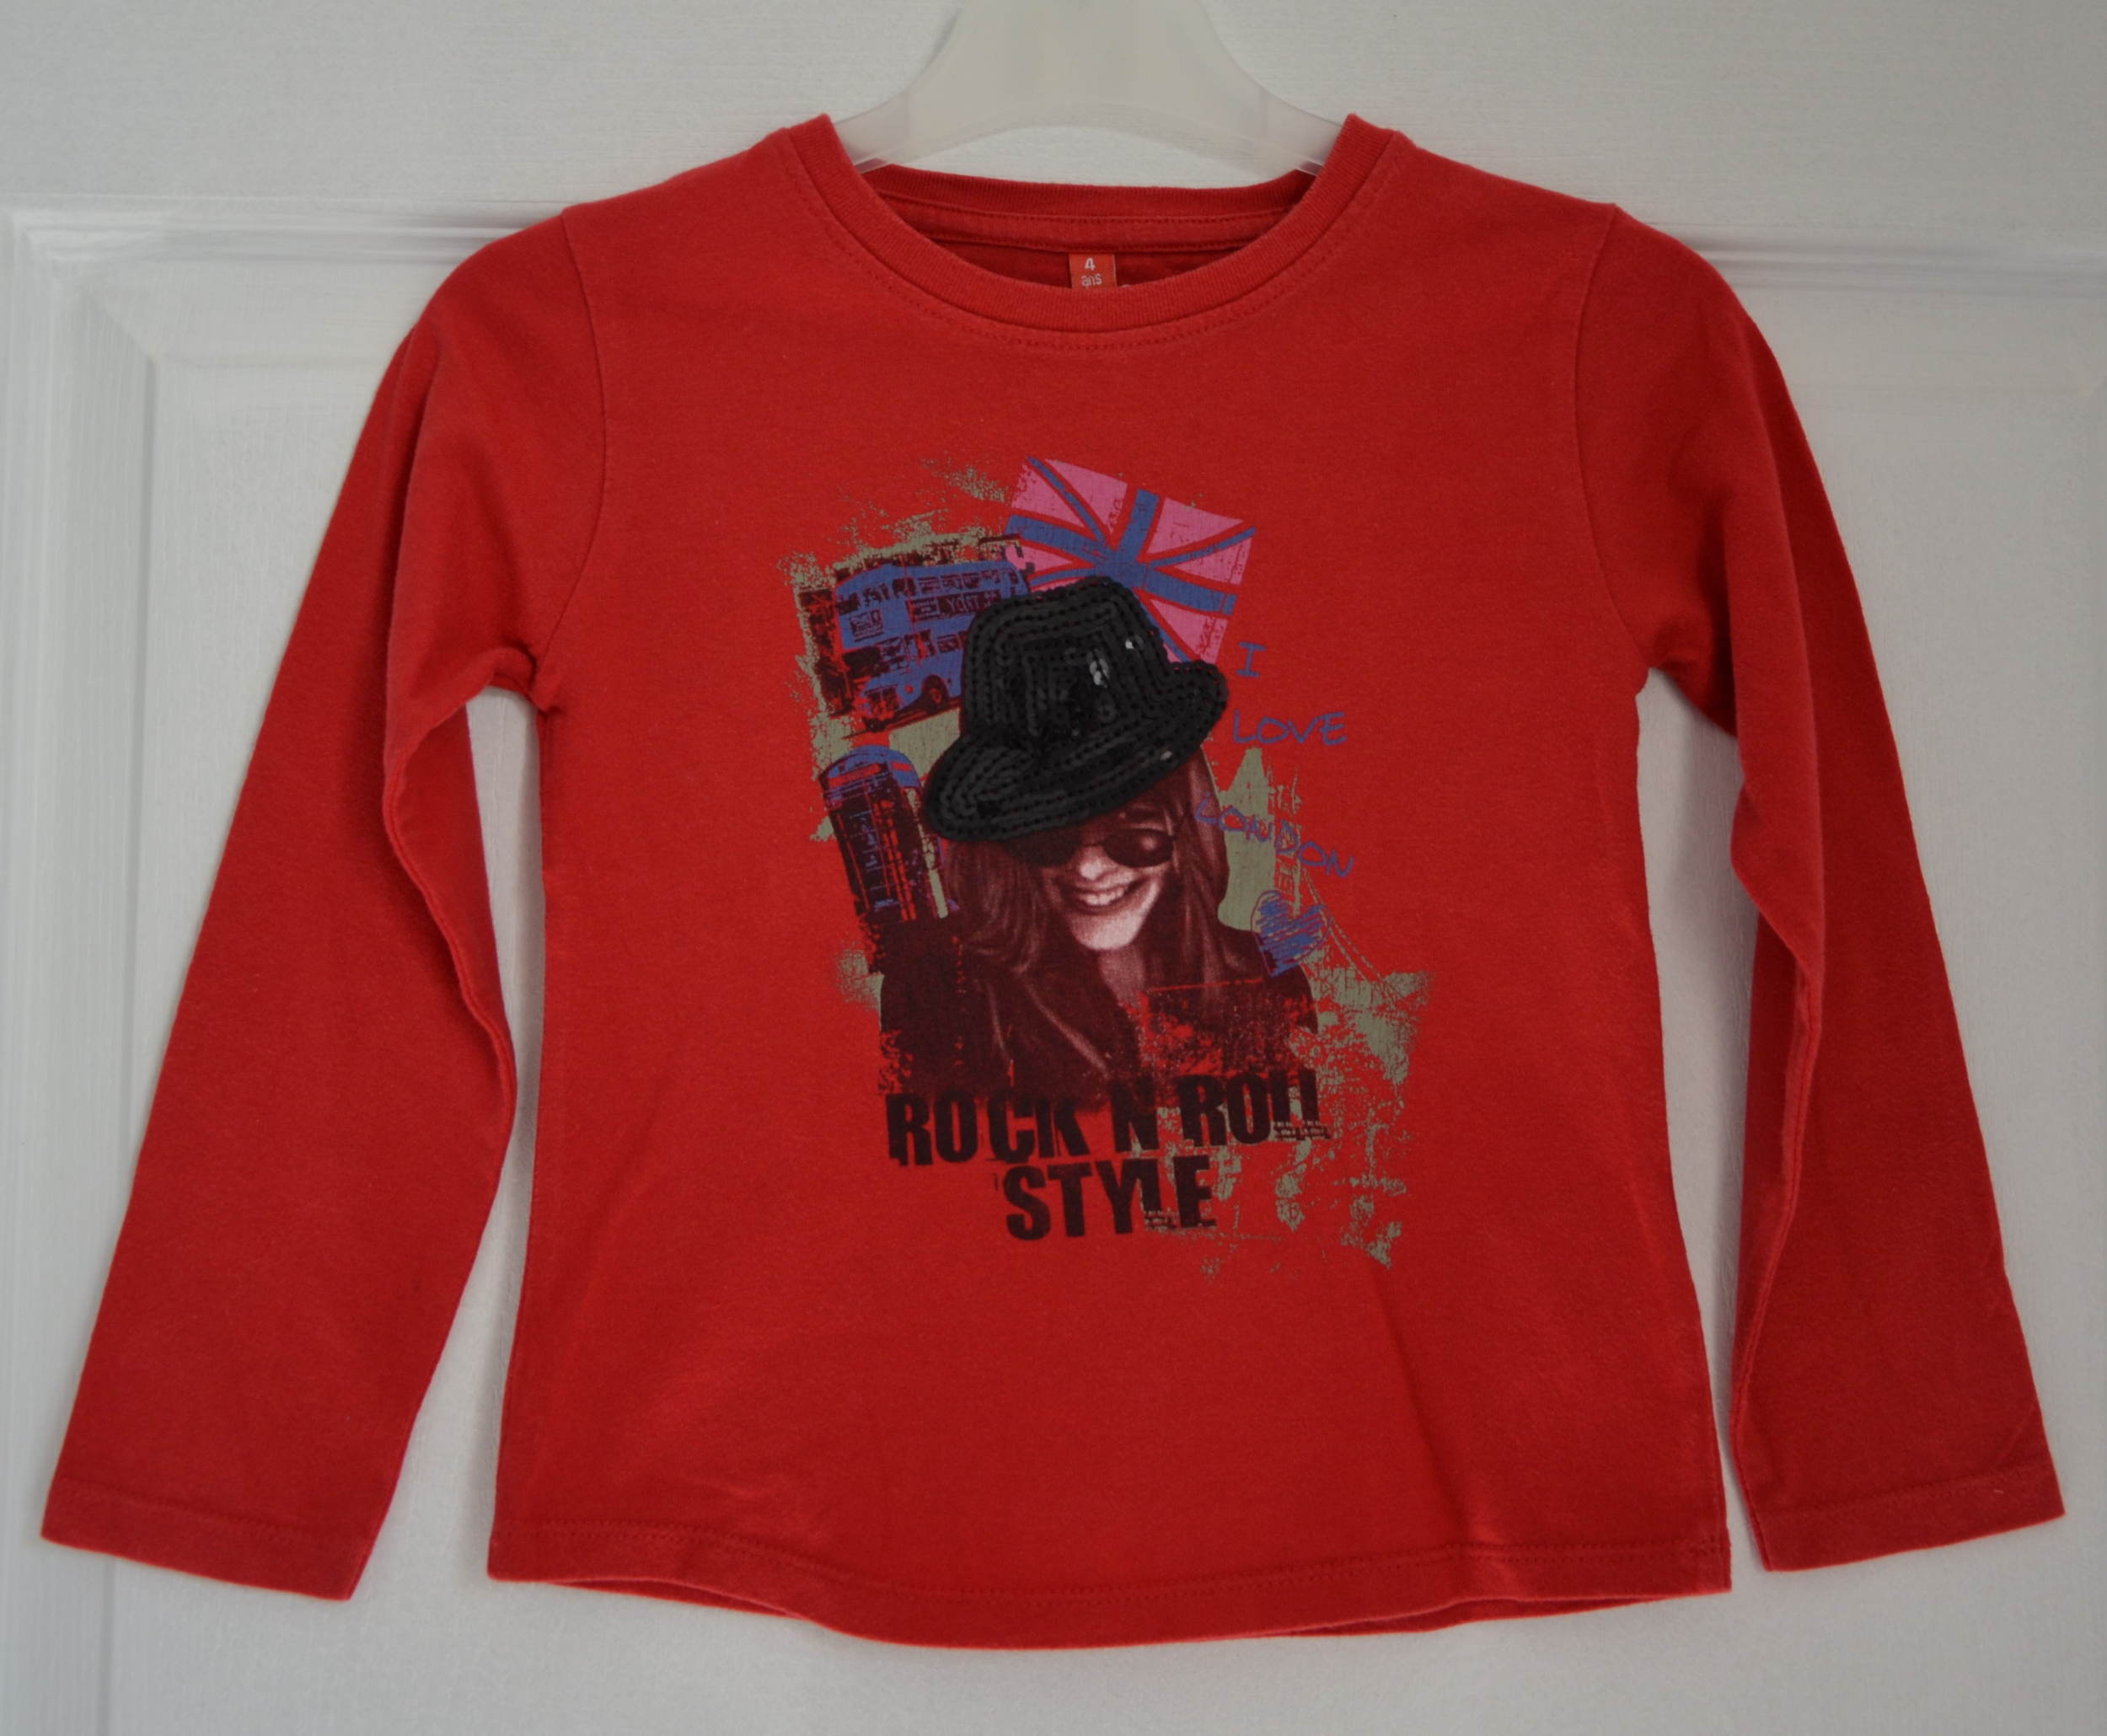 tee shirt rouge manches longues londres fille 4 ans rock roll attitude